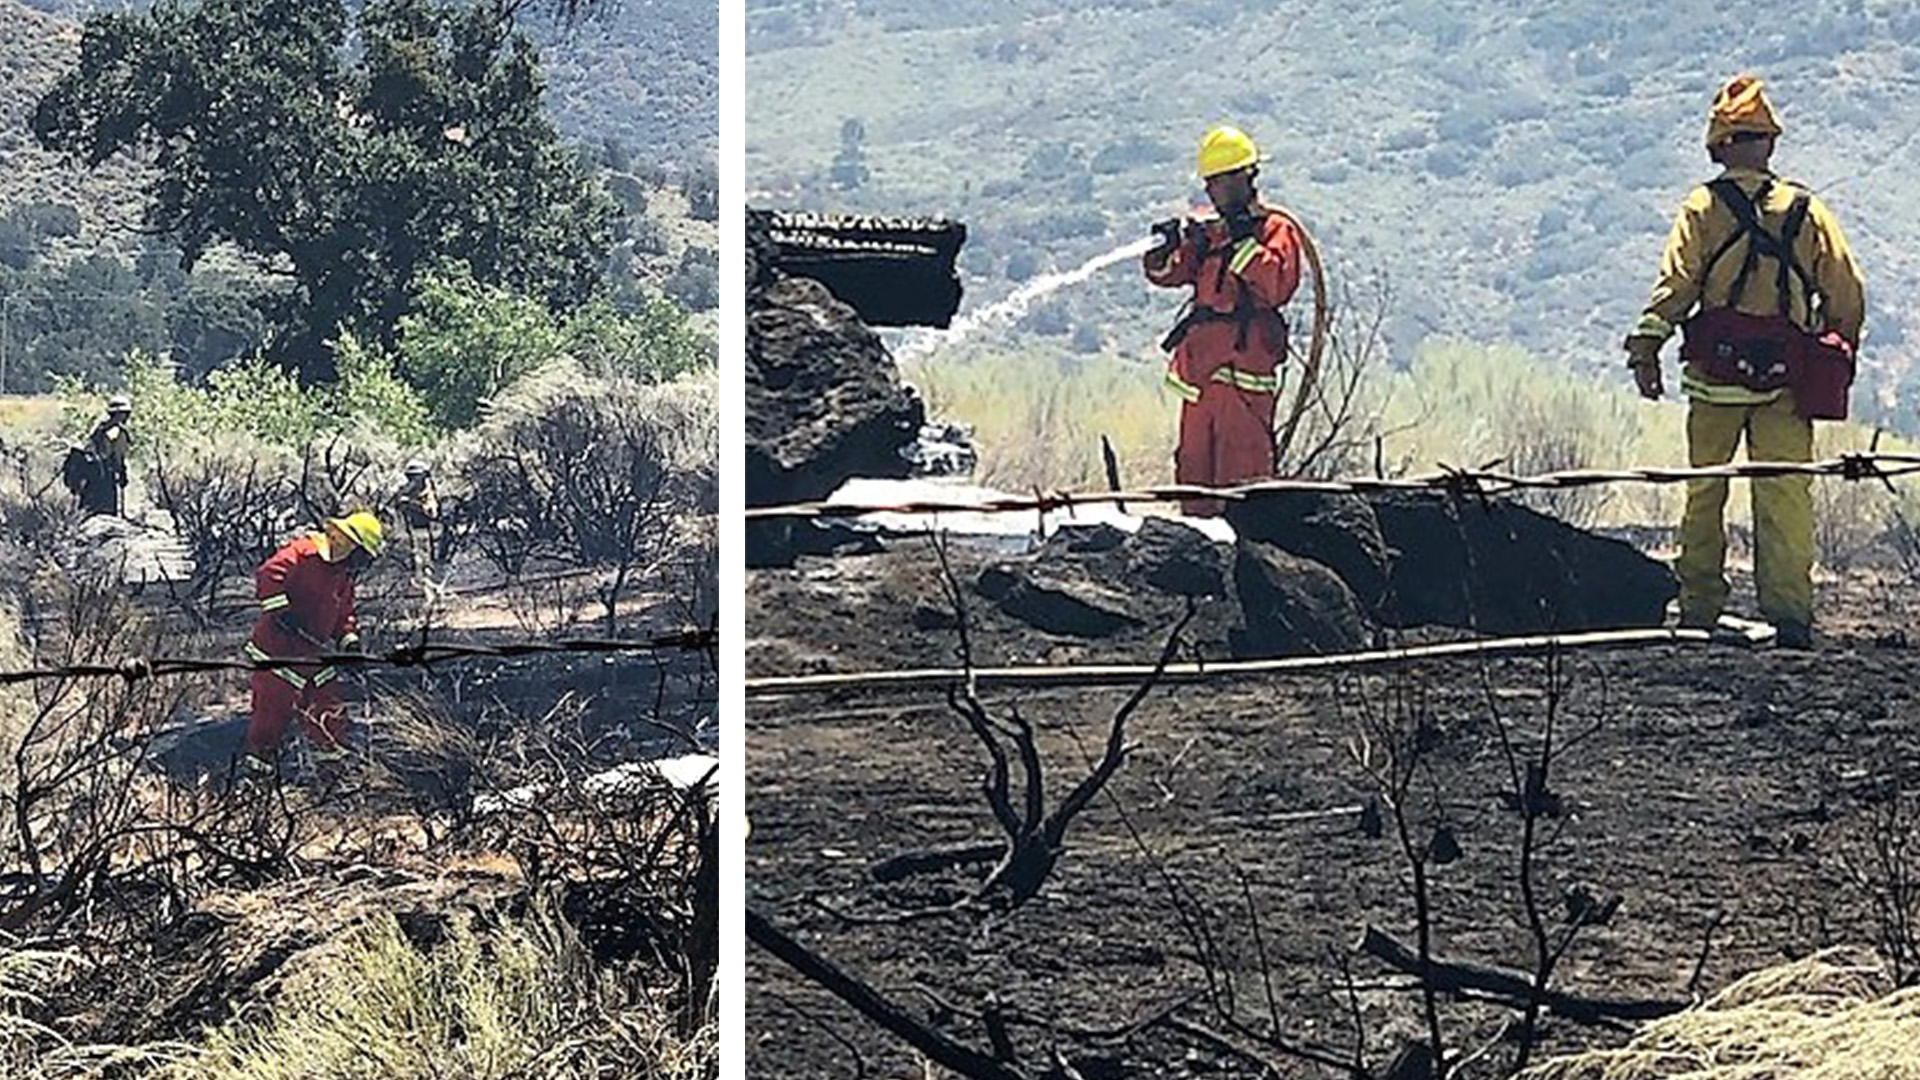 Two photos of firefighters putting out hot spots.